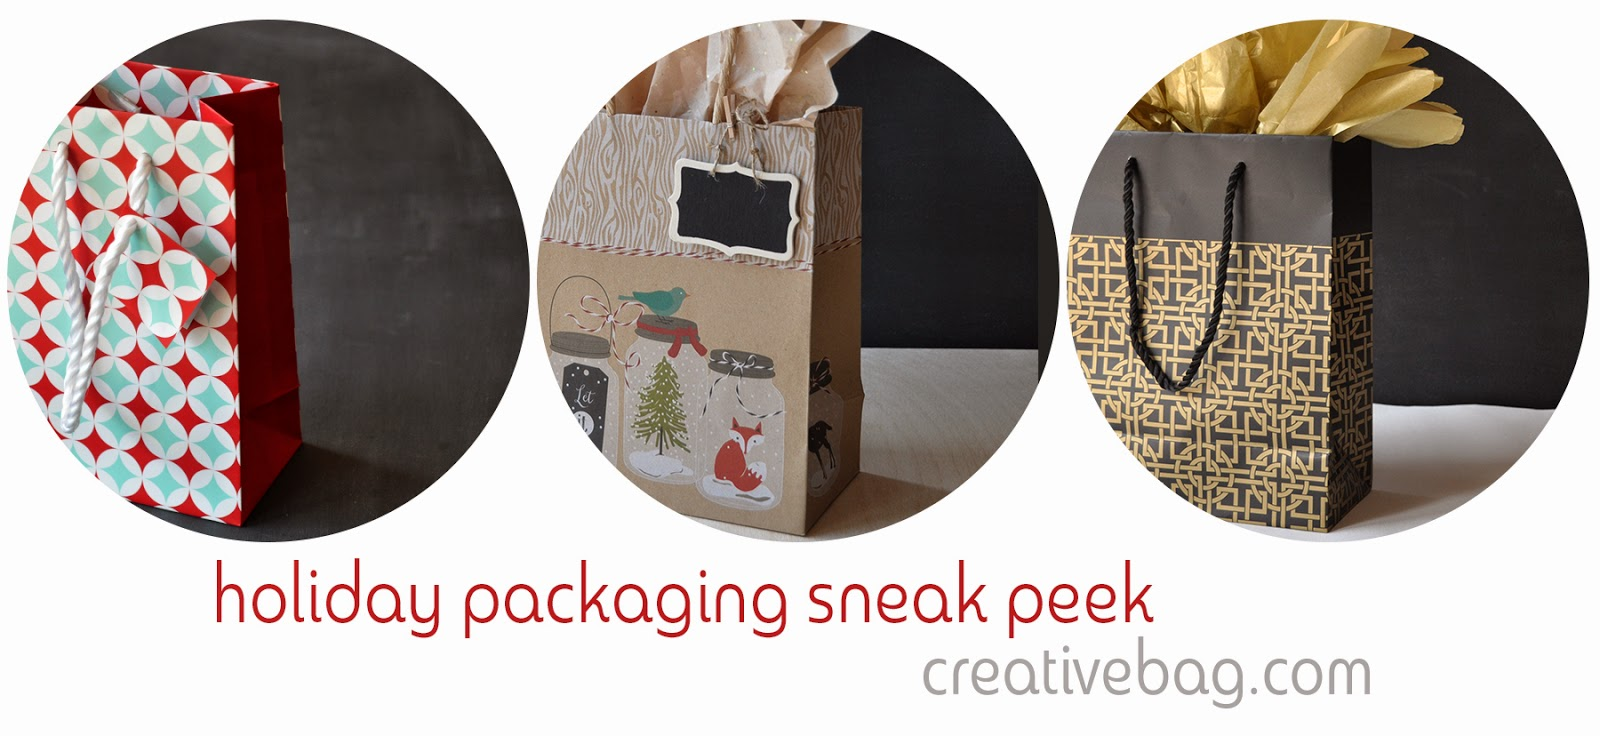 sneak peek of holiday packaging at creativebag.com